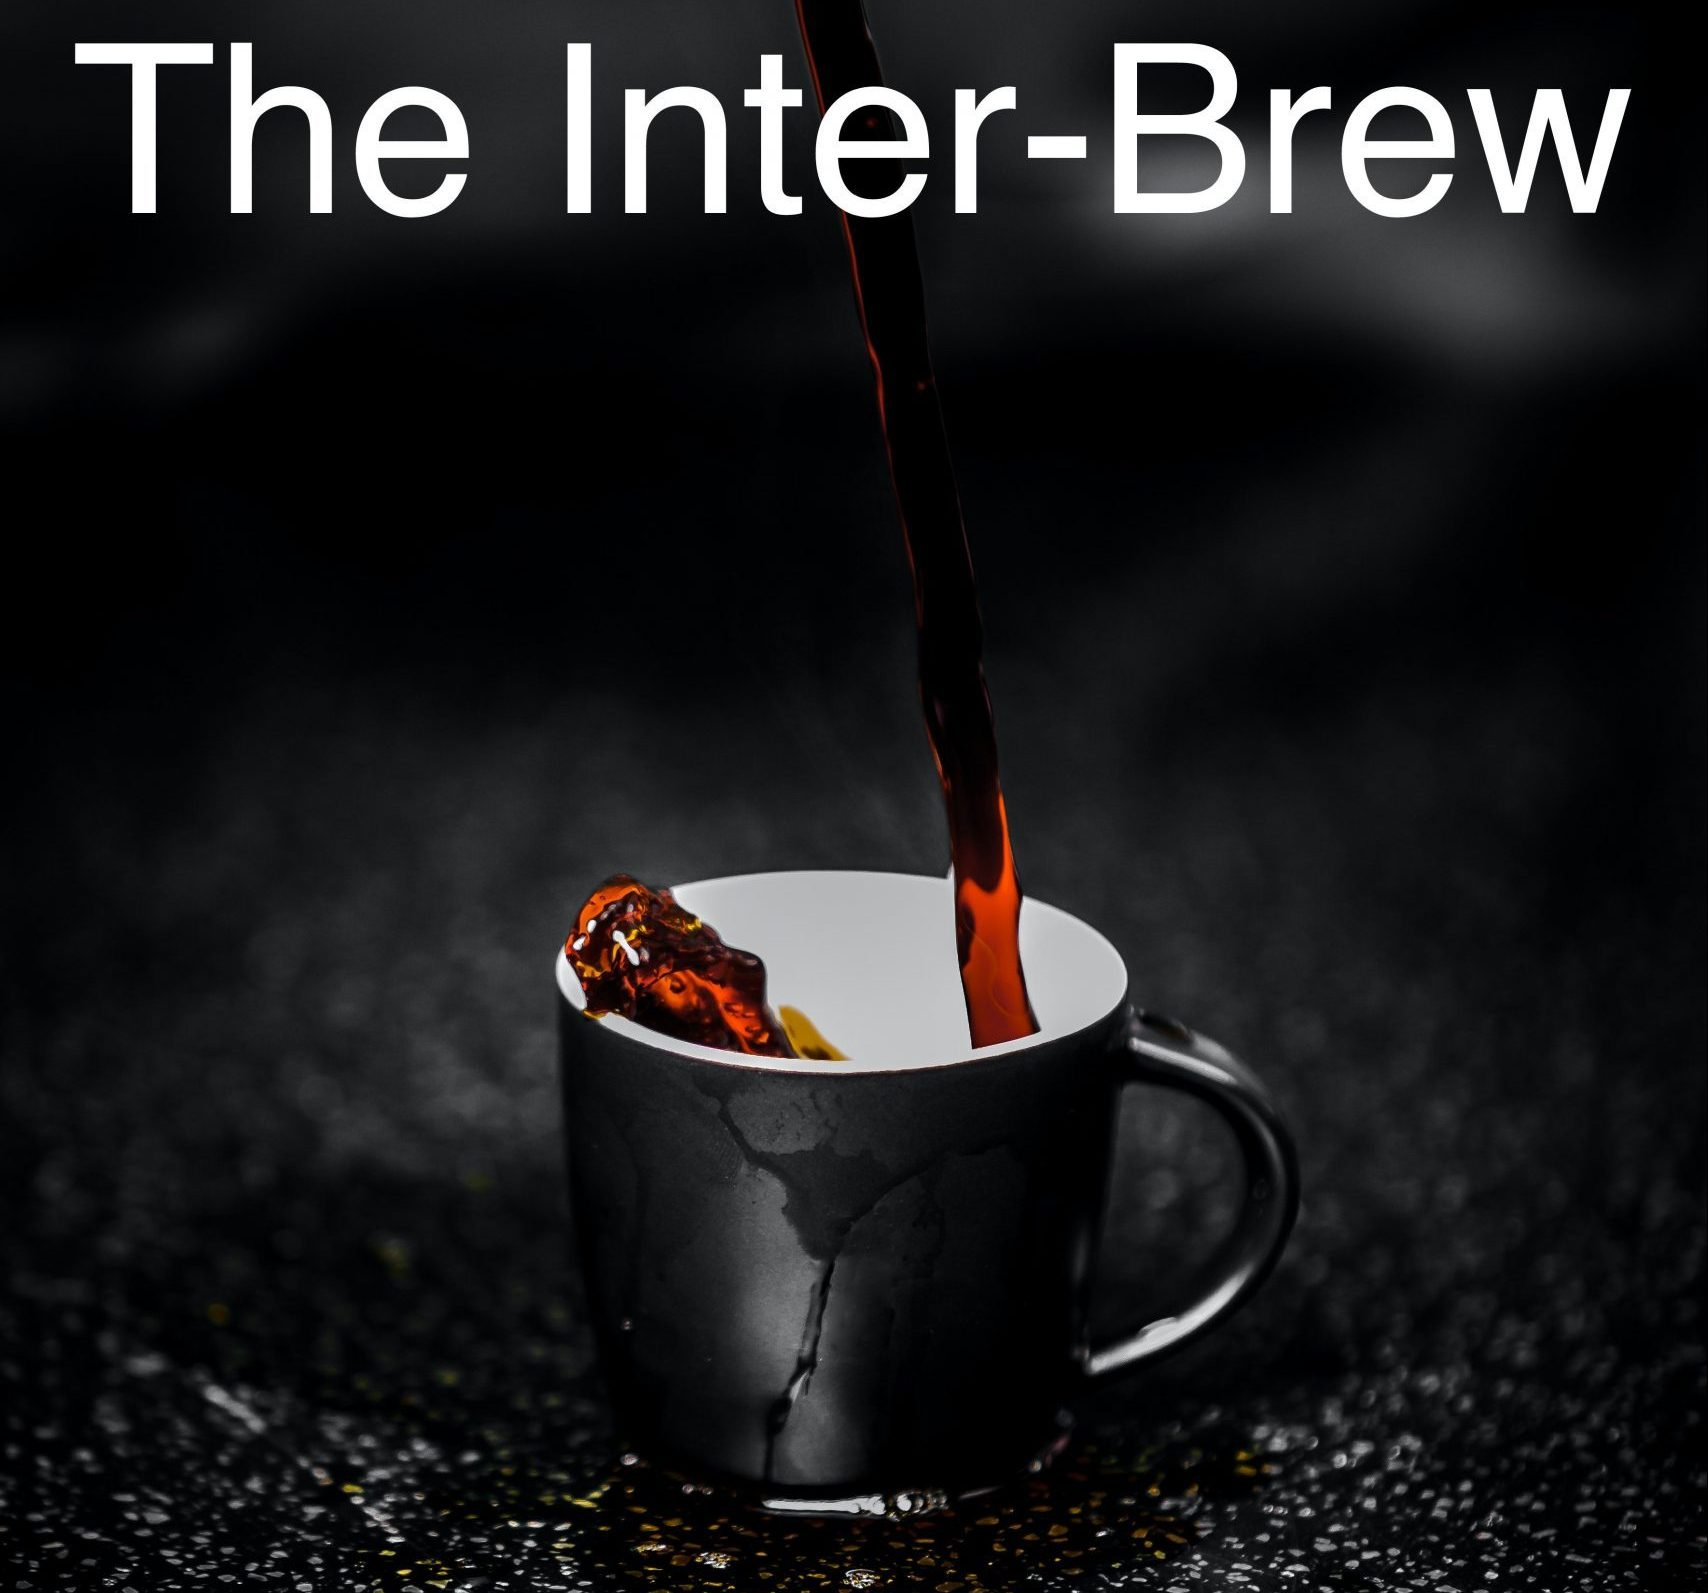 Coffee Beards & Bowties Presents:                                The Inter-Brew